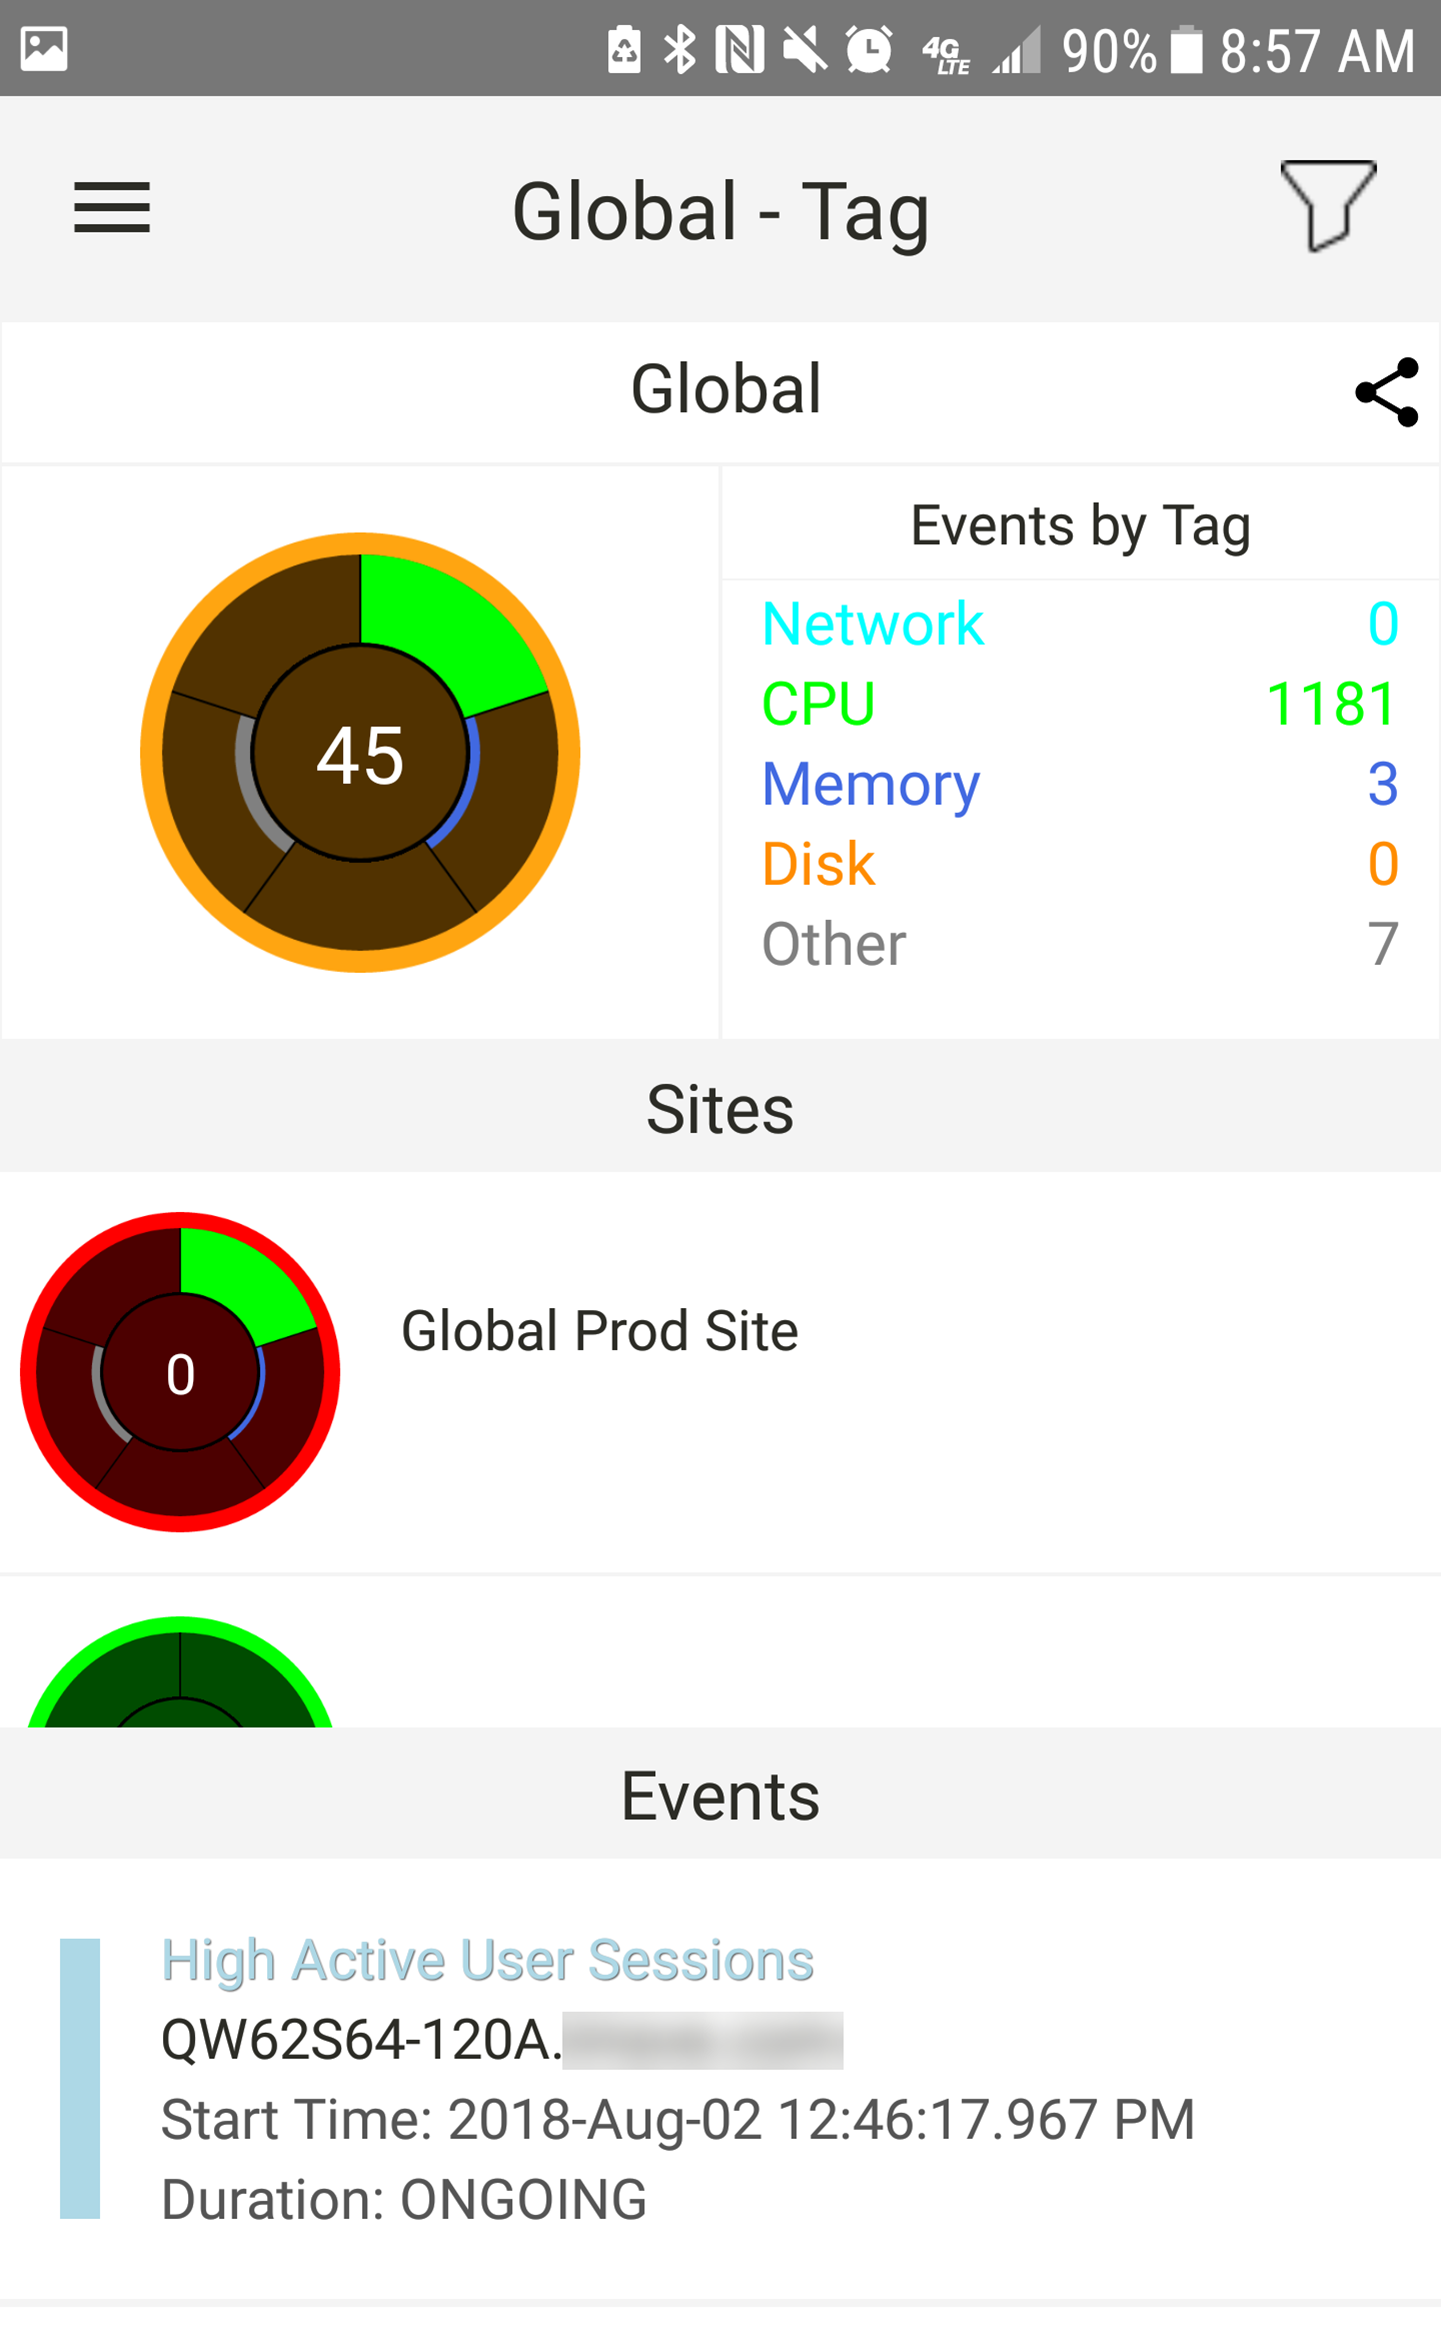 SentryOne App for Android Global Events by Tag